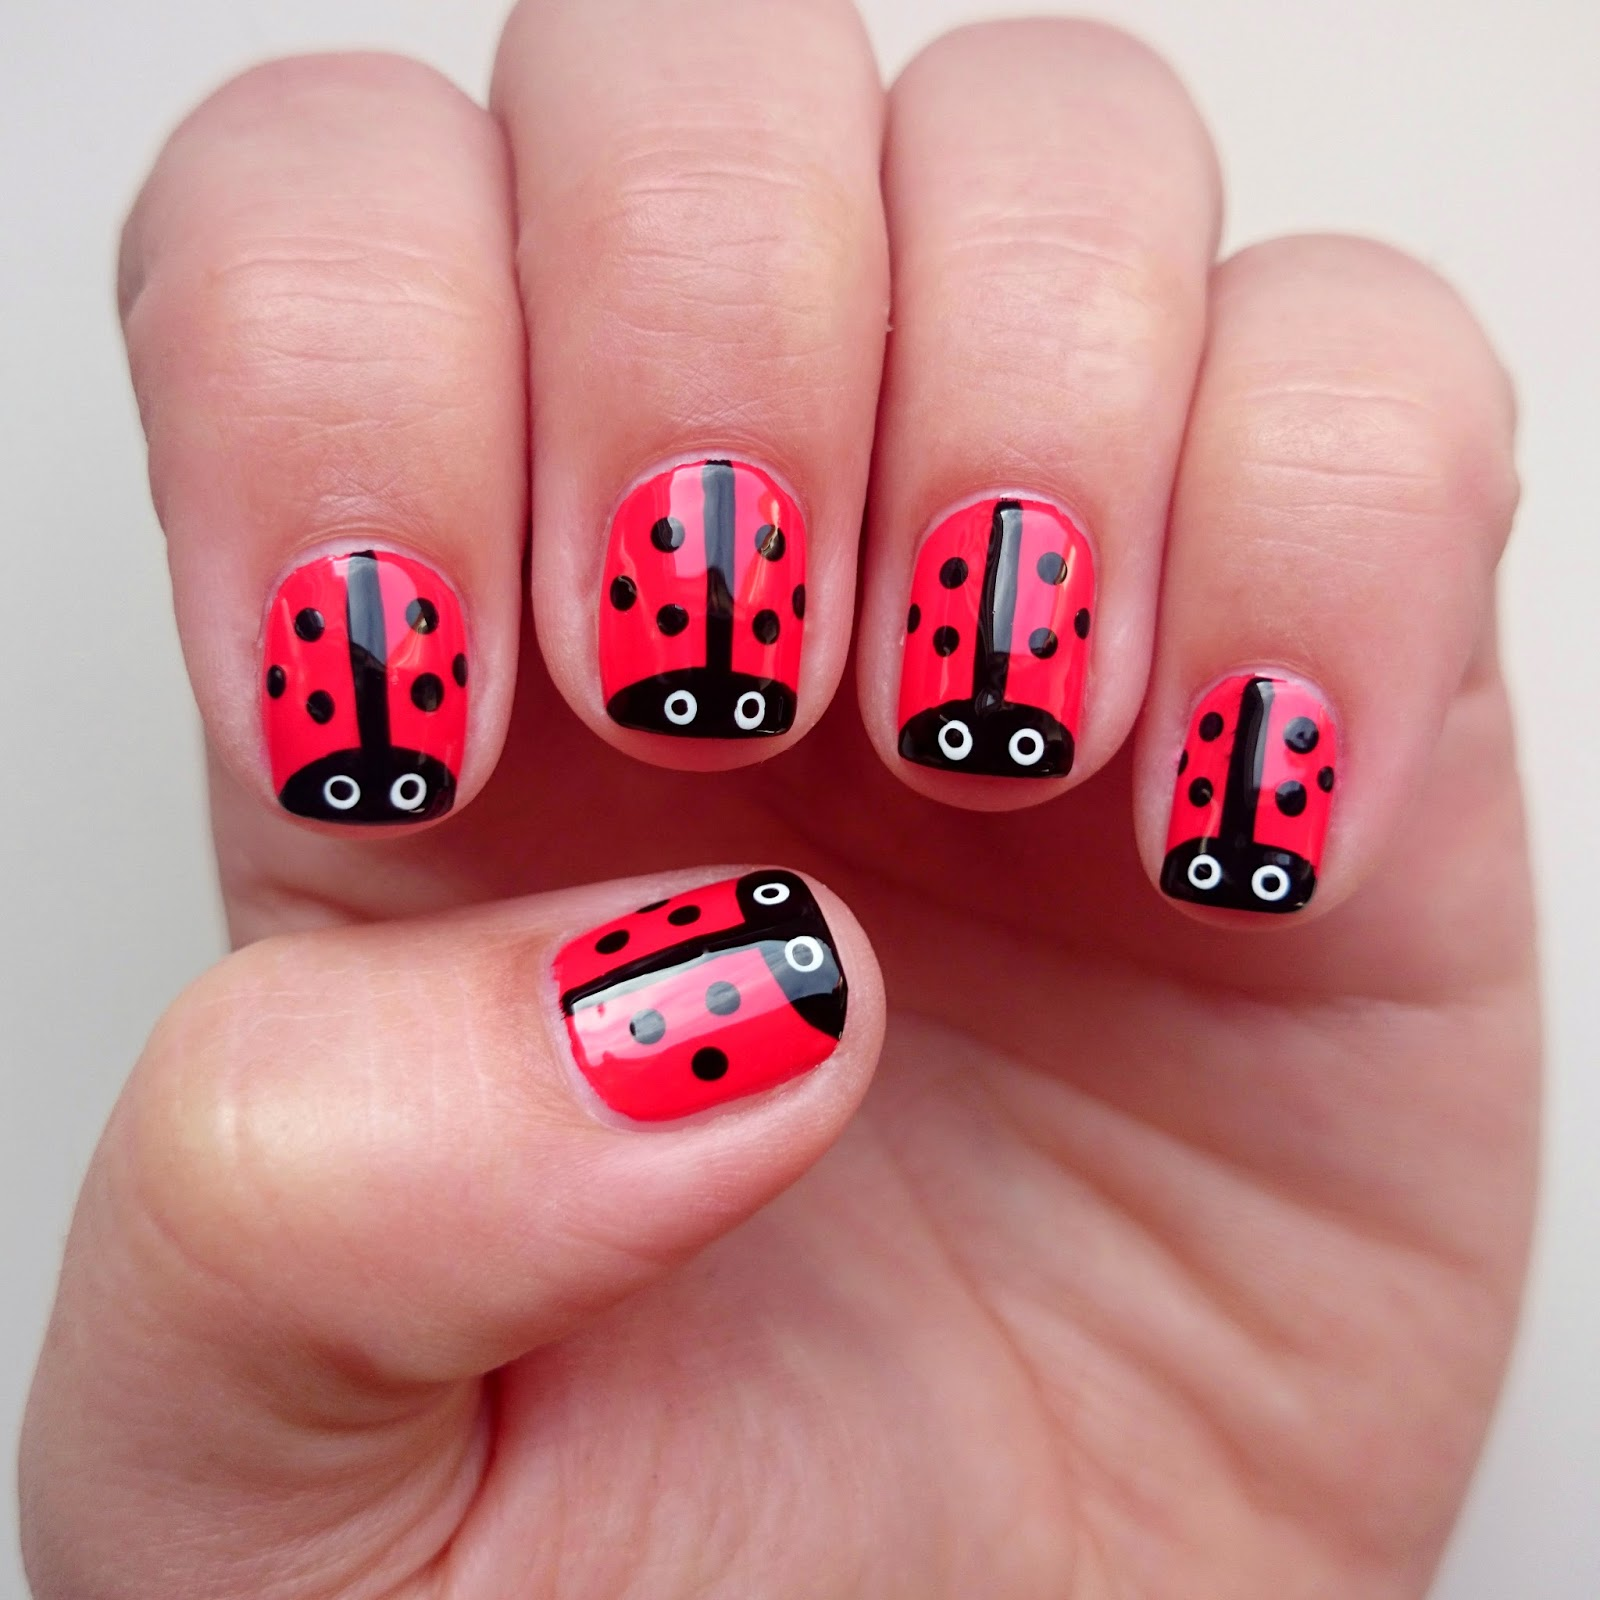 30 admirable nails for little girl nail design ideaz 30lady bug nails prinsesfo Choice Image